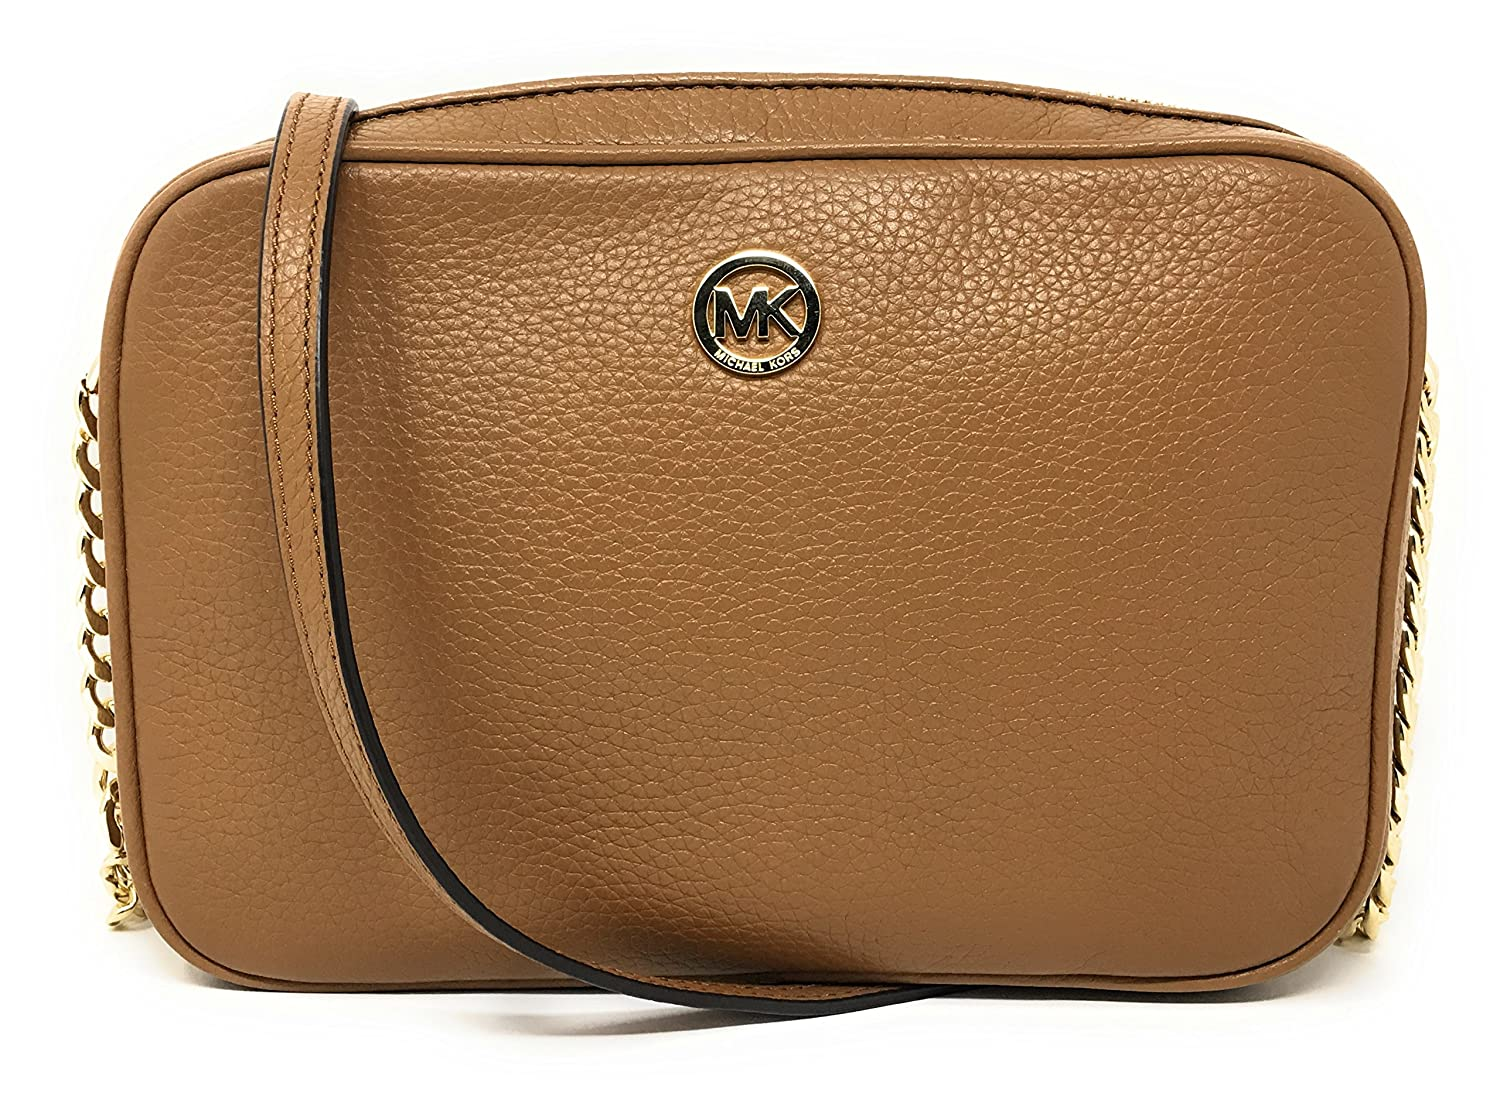 4e075bc6c670 Michael Kors Fulton Leather Large East West Cross-body (Acorn)  Handbags   Amazon.com